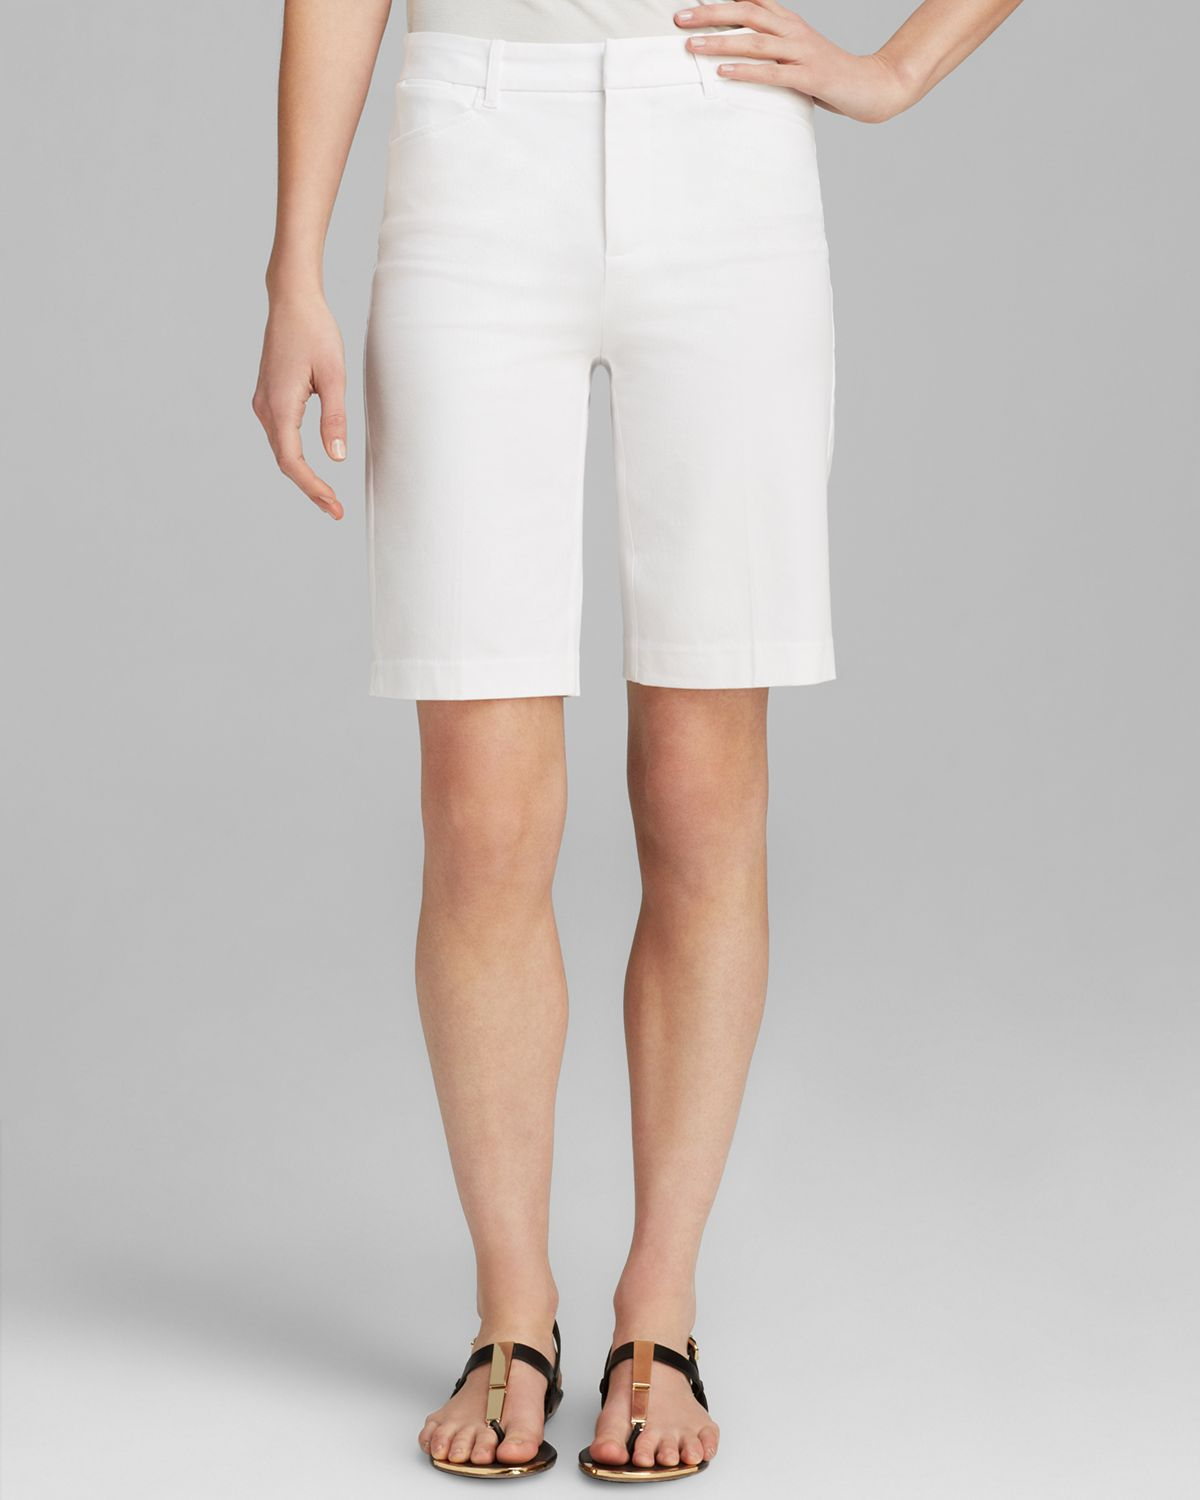 Nydj Bermuda Shorts in White | Lyst